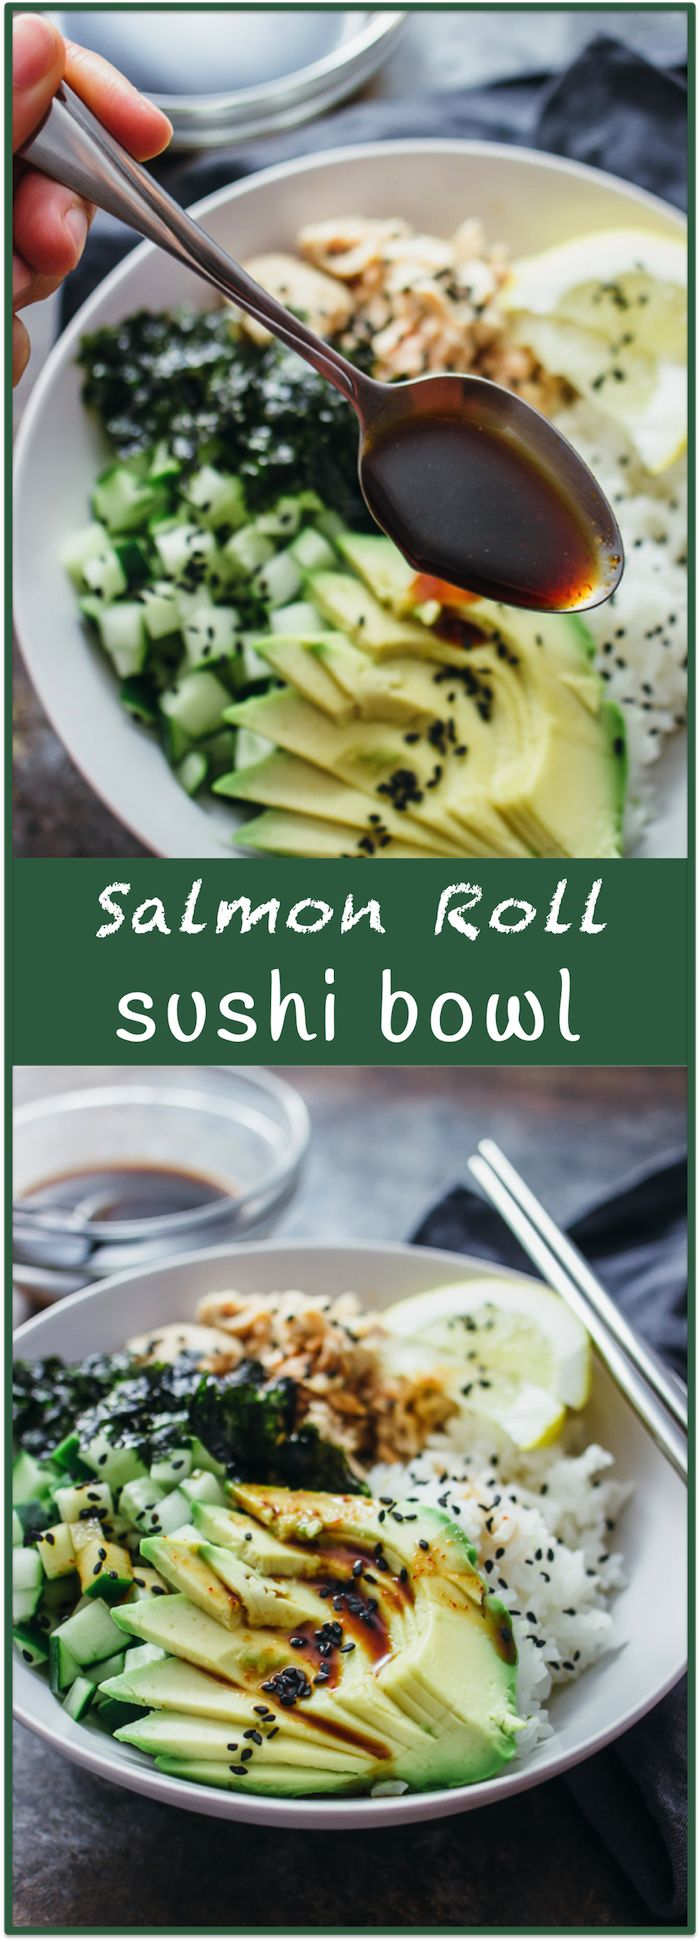 Salmon roll sushi bowl - Imagine your favorite sushi roll (California roll? Tuna roll? Dynamite roll?) — in a bowl. Almost everything tastes better in bowl form (think burritos) and sushi is no exception. This delicious sushi bowl recipe includes salmon, sliced avocado, diced cucumber, crumbled seaweed, and toasted sesame seeds. Best yet, there's an easy-to-make spicy dressing made of soy sauce, sriracha, and a hint of lemon. - savorytooth.com via @savory_tooth